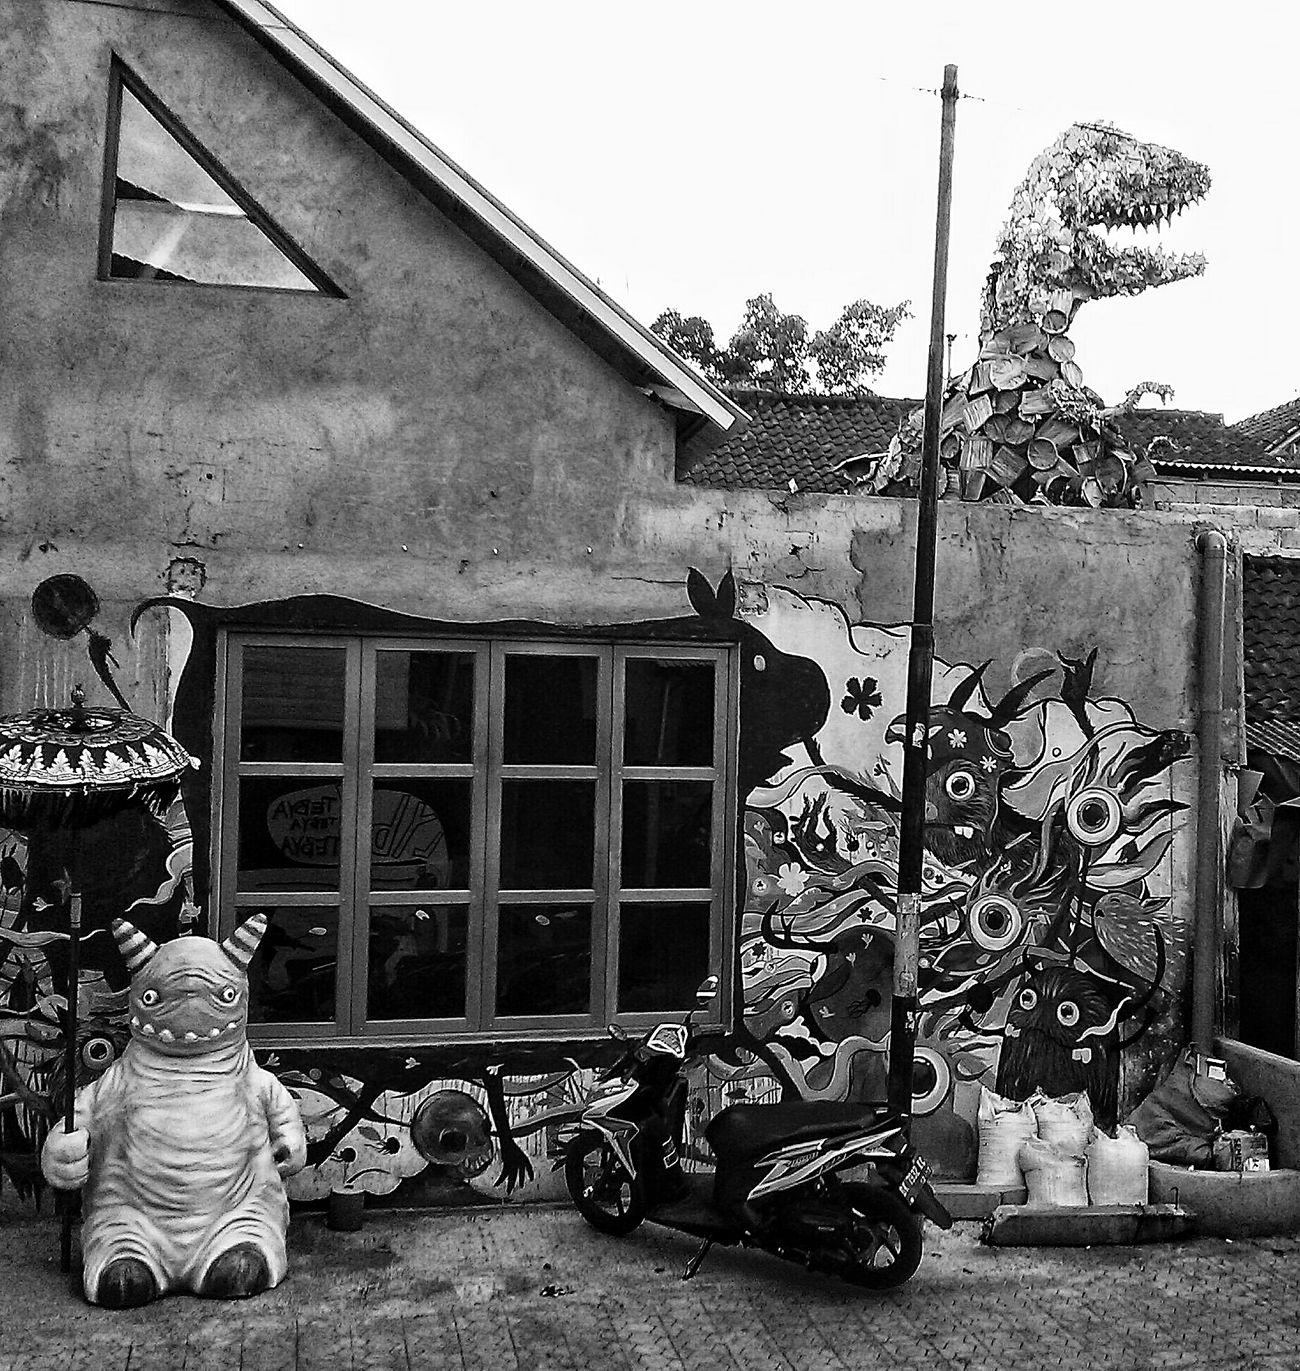 T-rex and his friends.. Streetphoto_bw Urbanphotography Streetart Urban Art Monochrome Ubud INDONESIA